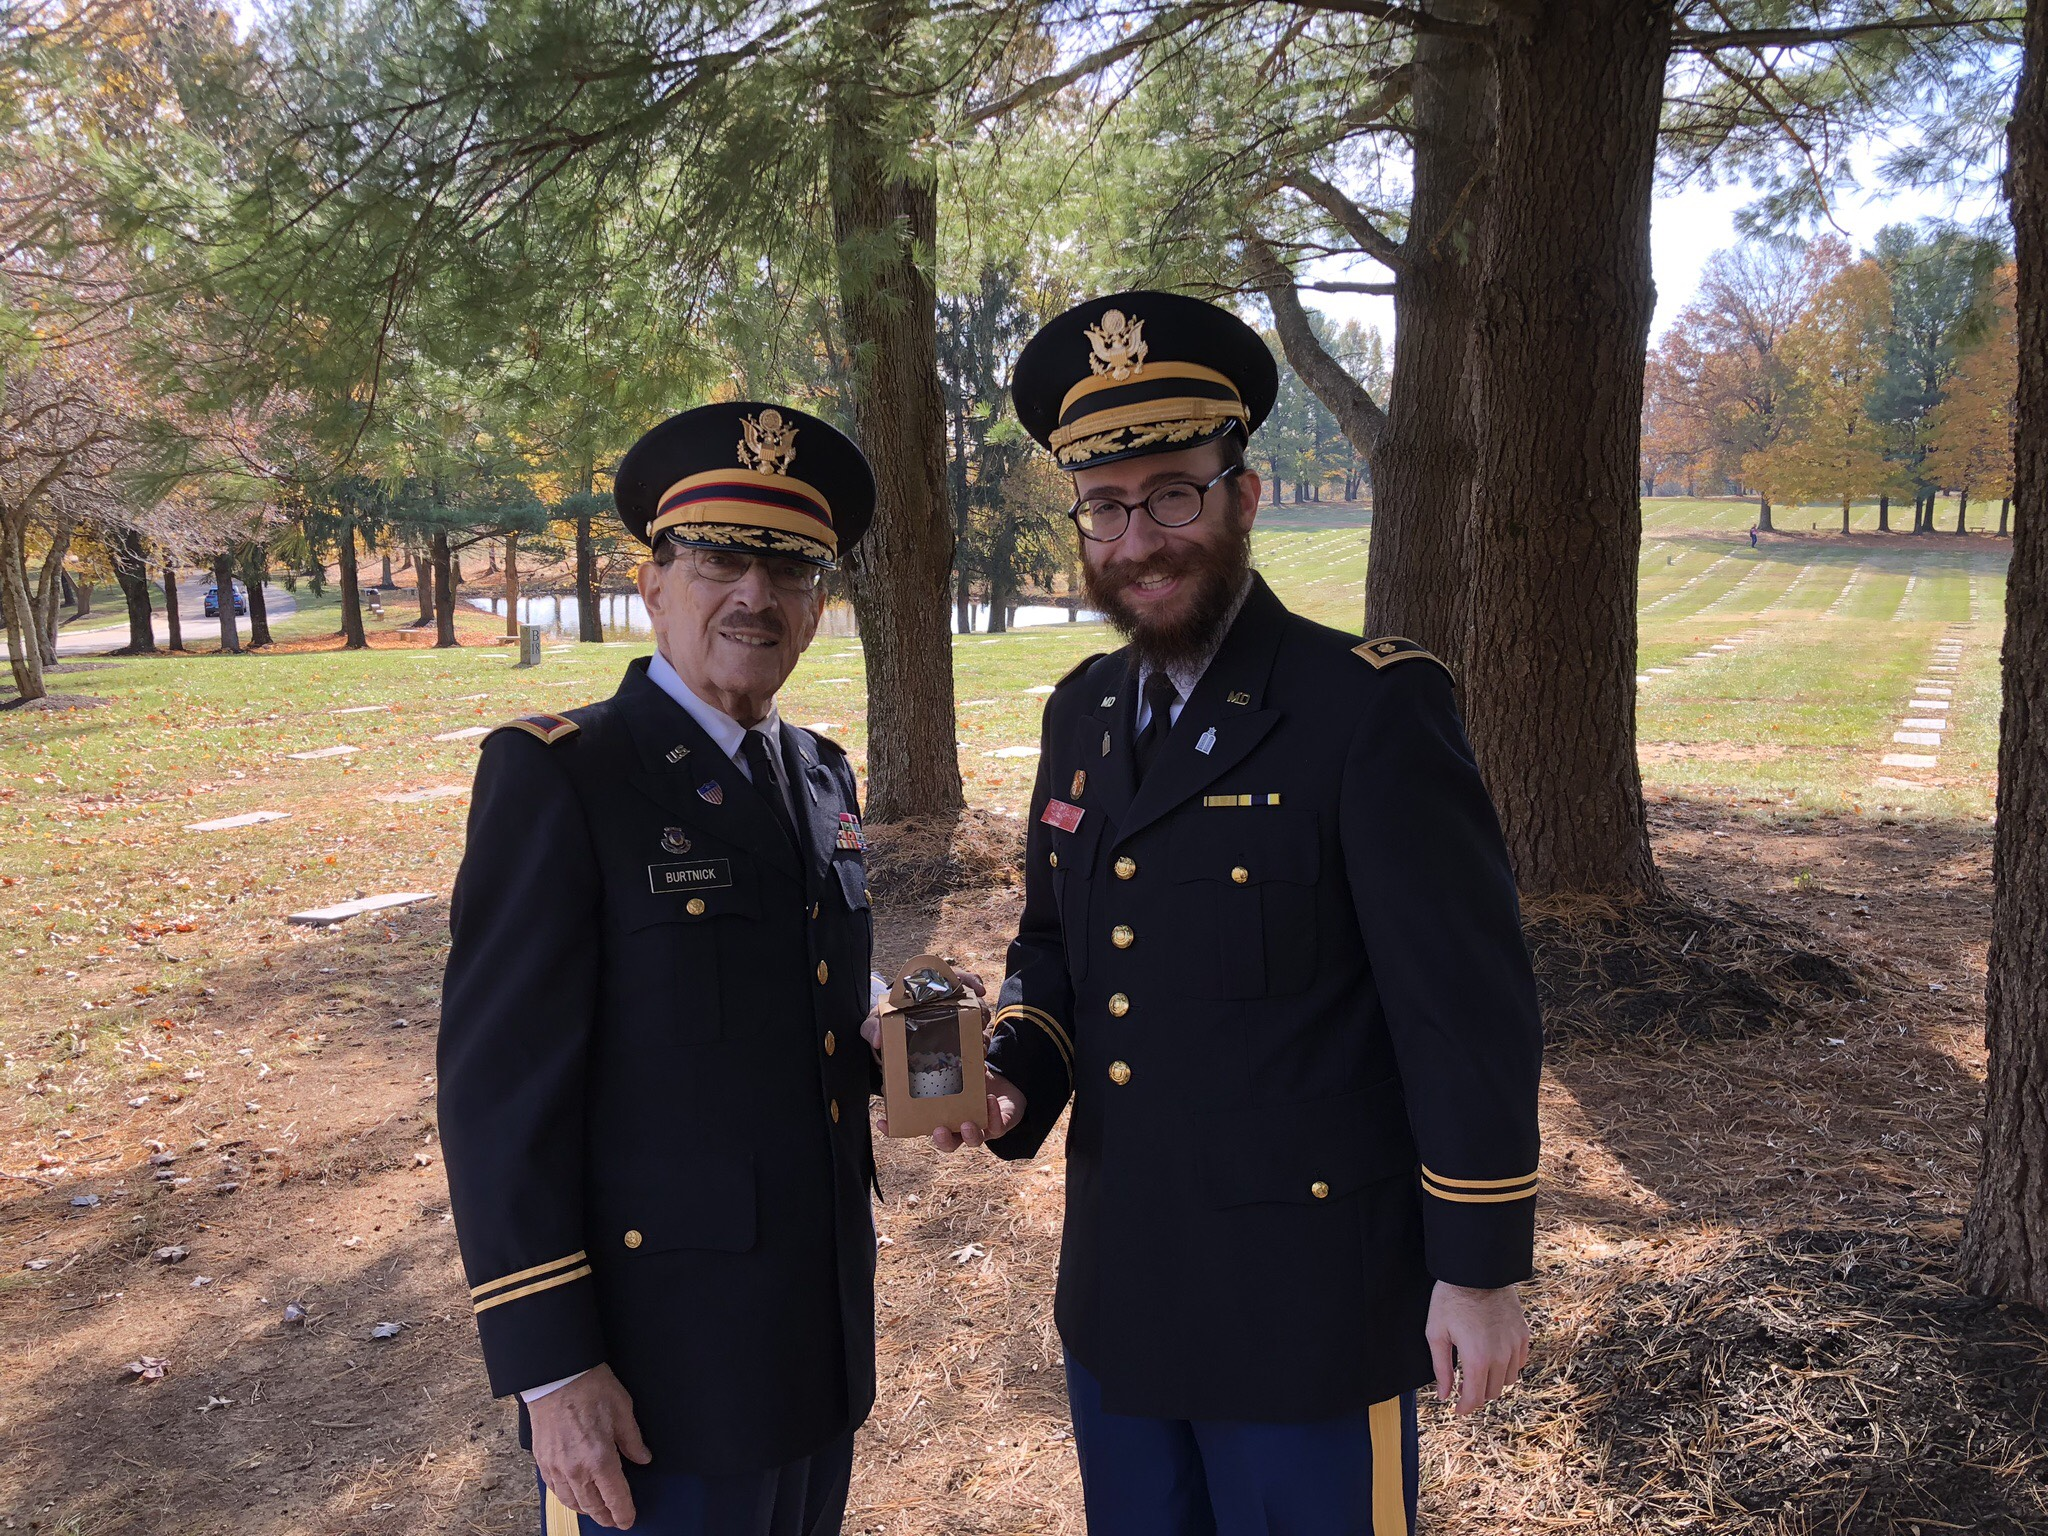 Rabbi Chesky Tenenbaum and Col. Erwin Burtnick at this years Veteran's Day Kaddish Service at Garrison Forest Veterans Cemetery. (Tenenbaum)